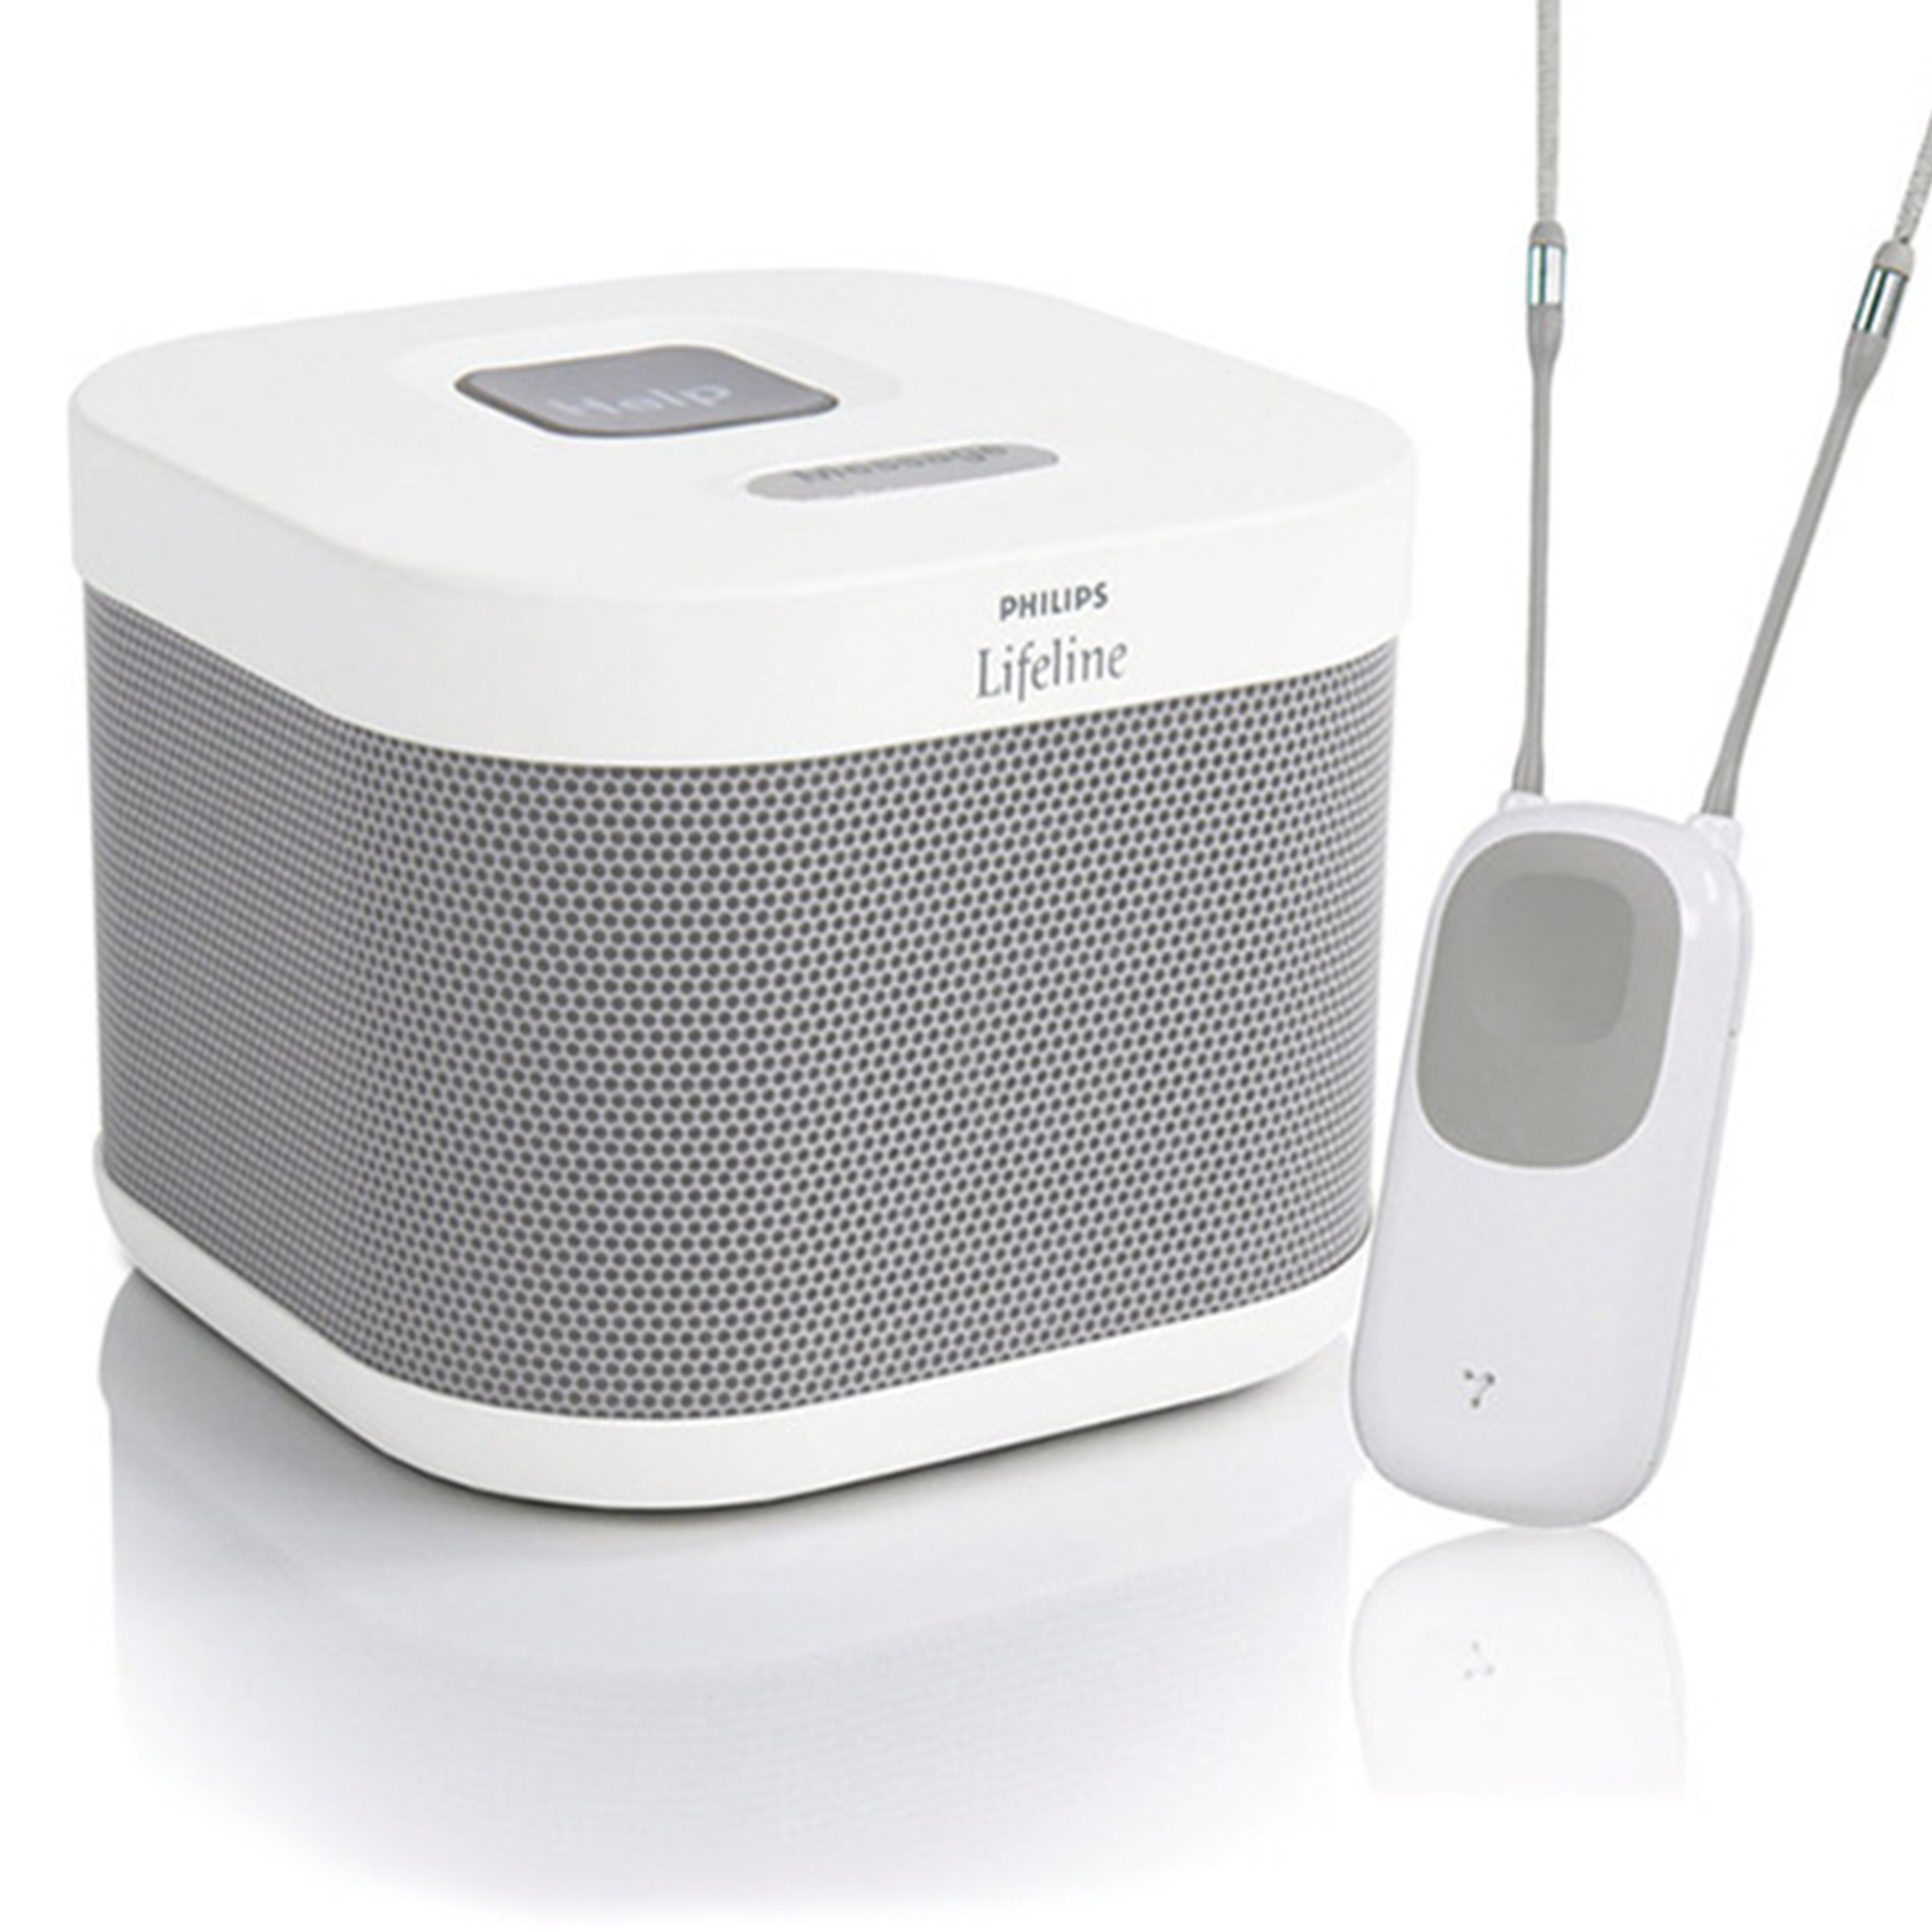 Designapplause Lifeline Gosafe By Philips